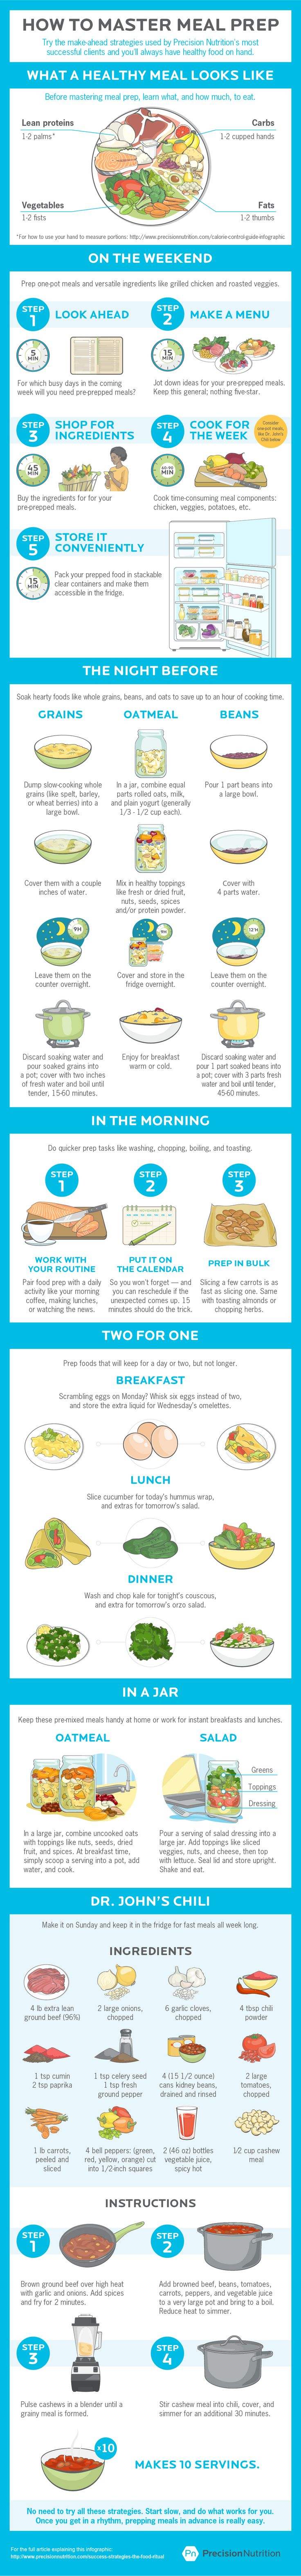 Preparar comida saludable. Check out these weekly meal prep strategies, used by Precision Nutrition's most successful clients. And learn how they can help you save time on preparing healthy food too.